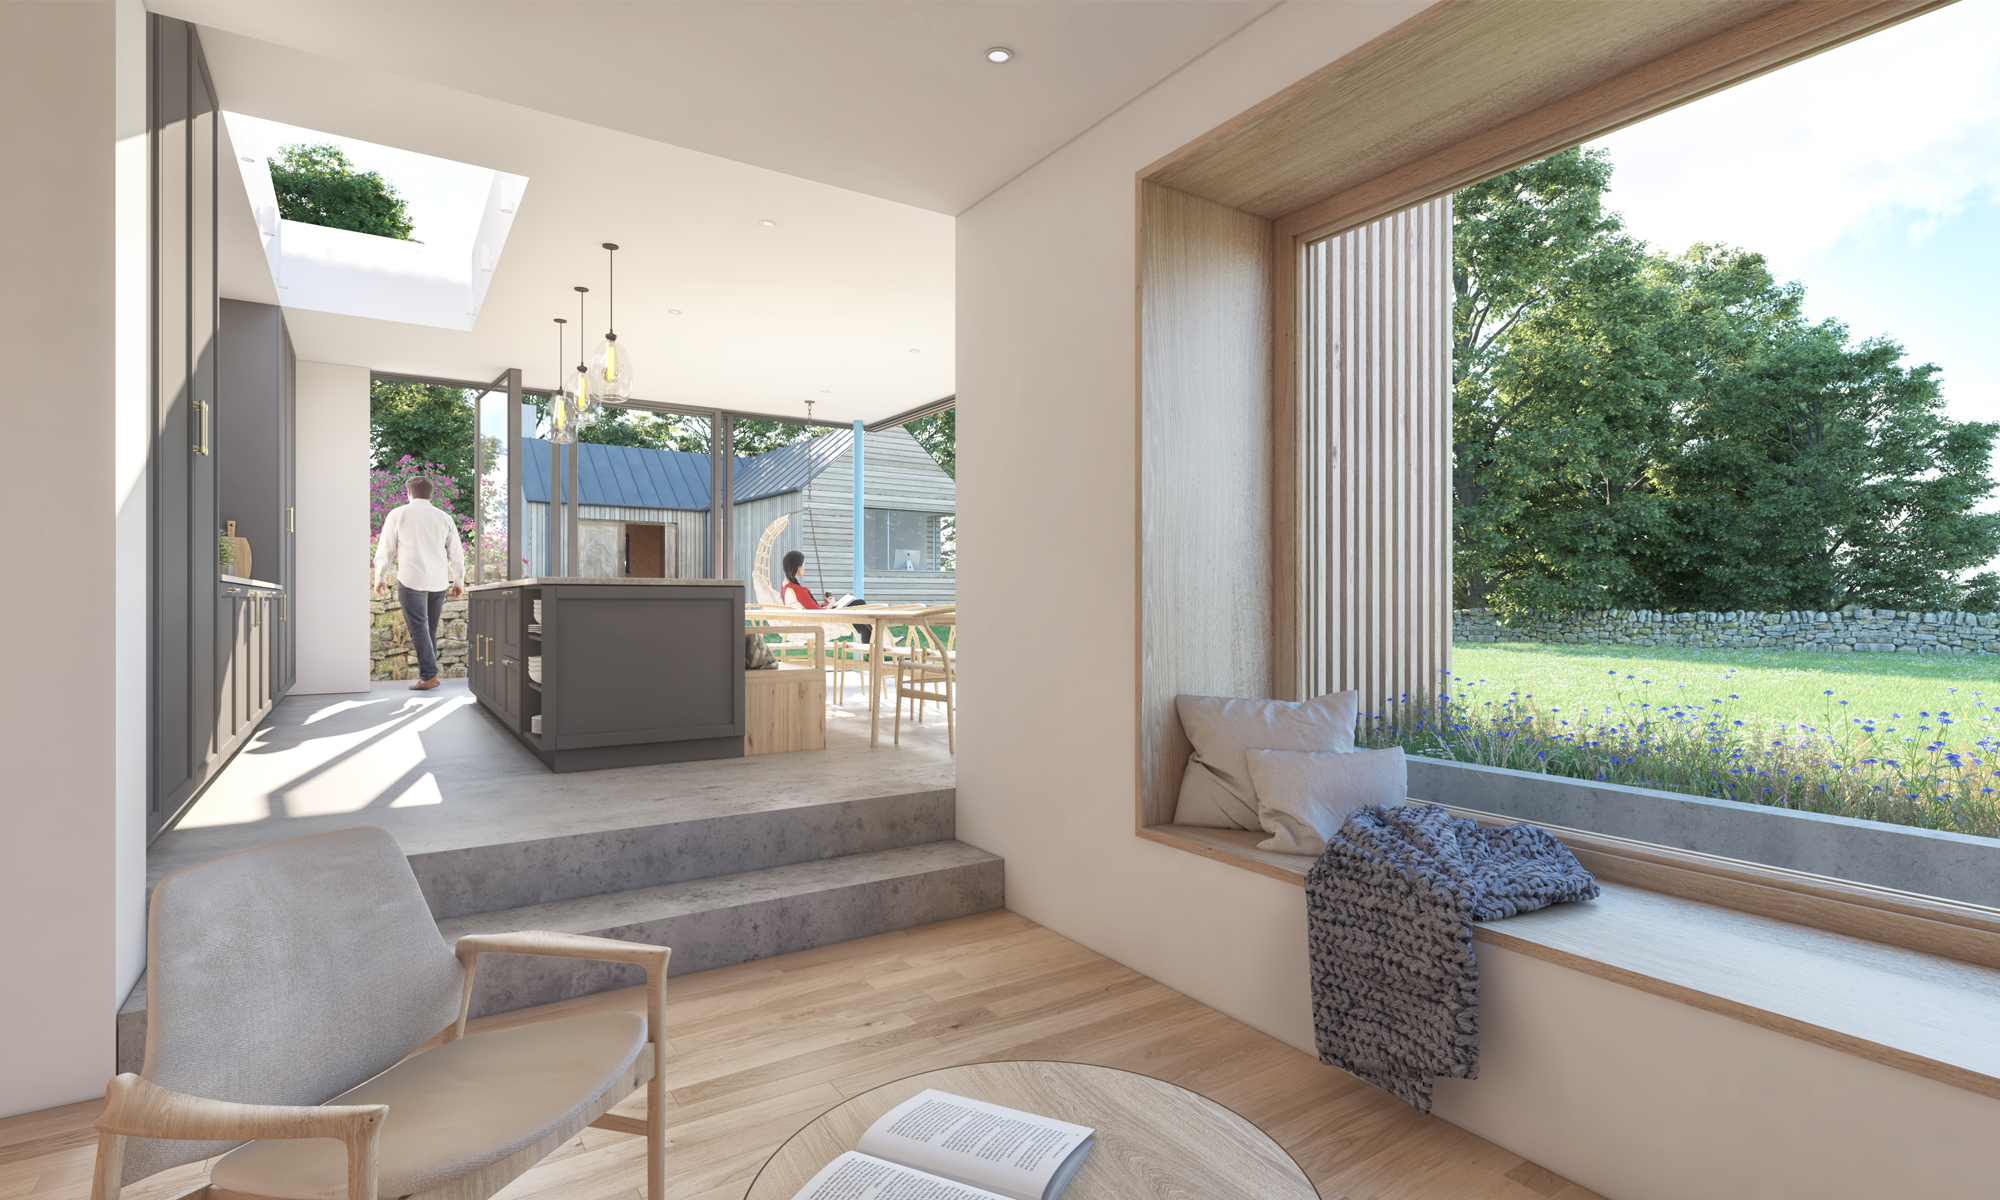 WEST COTTAGE INTERIOR RENDER